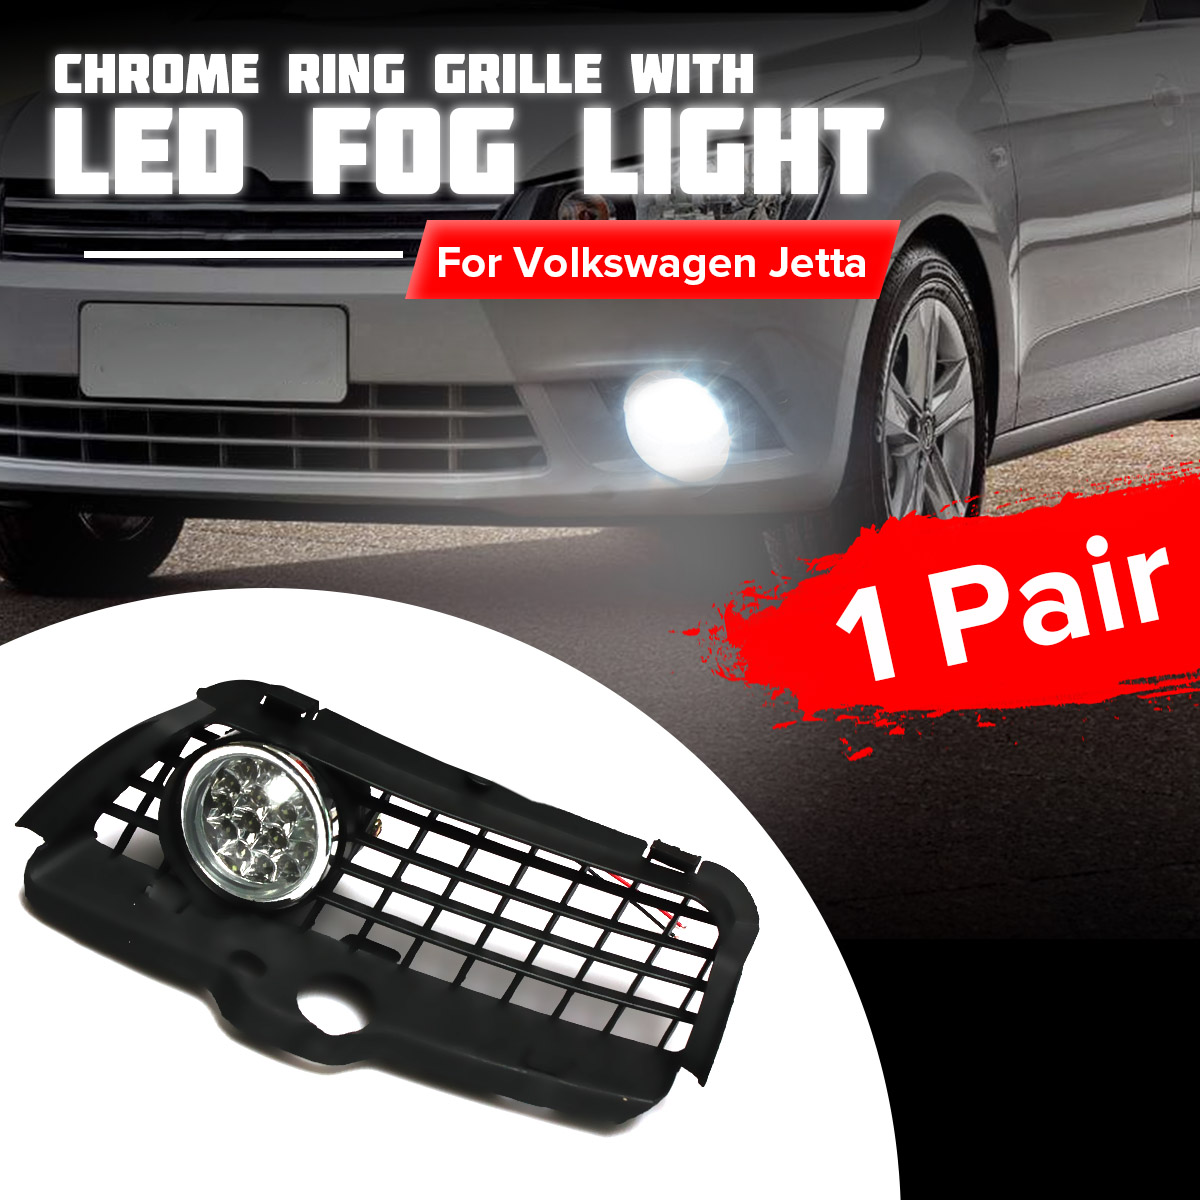 170703248756 6000K LED FOG <font><b>LIGHT</b></font> LAMP FRONT LOWER GRILL KIT FOR <font><b>VW</b></font>/<font><b>MK3</b></font>/<font><b>GOLF</b></font> 92-98 image